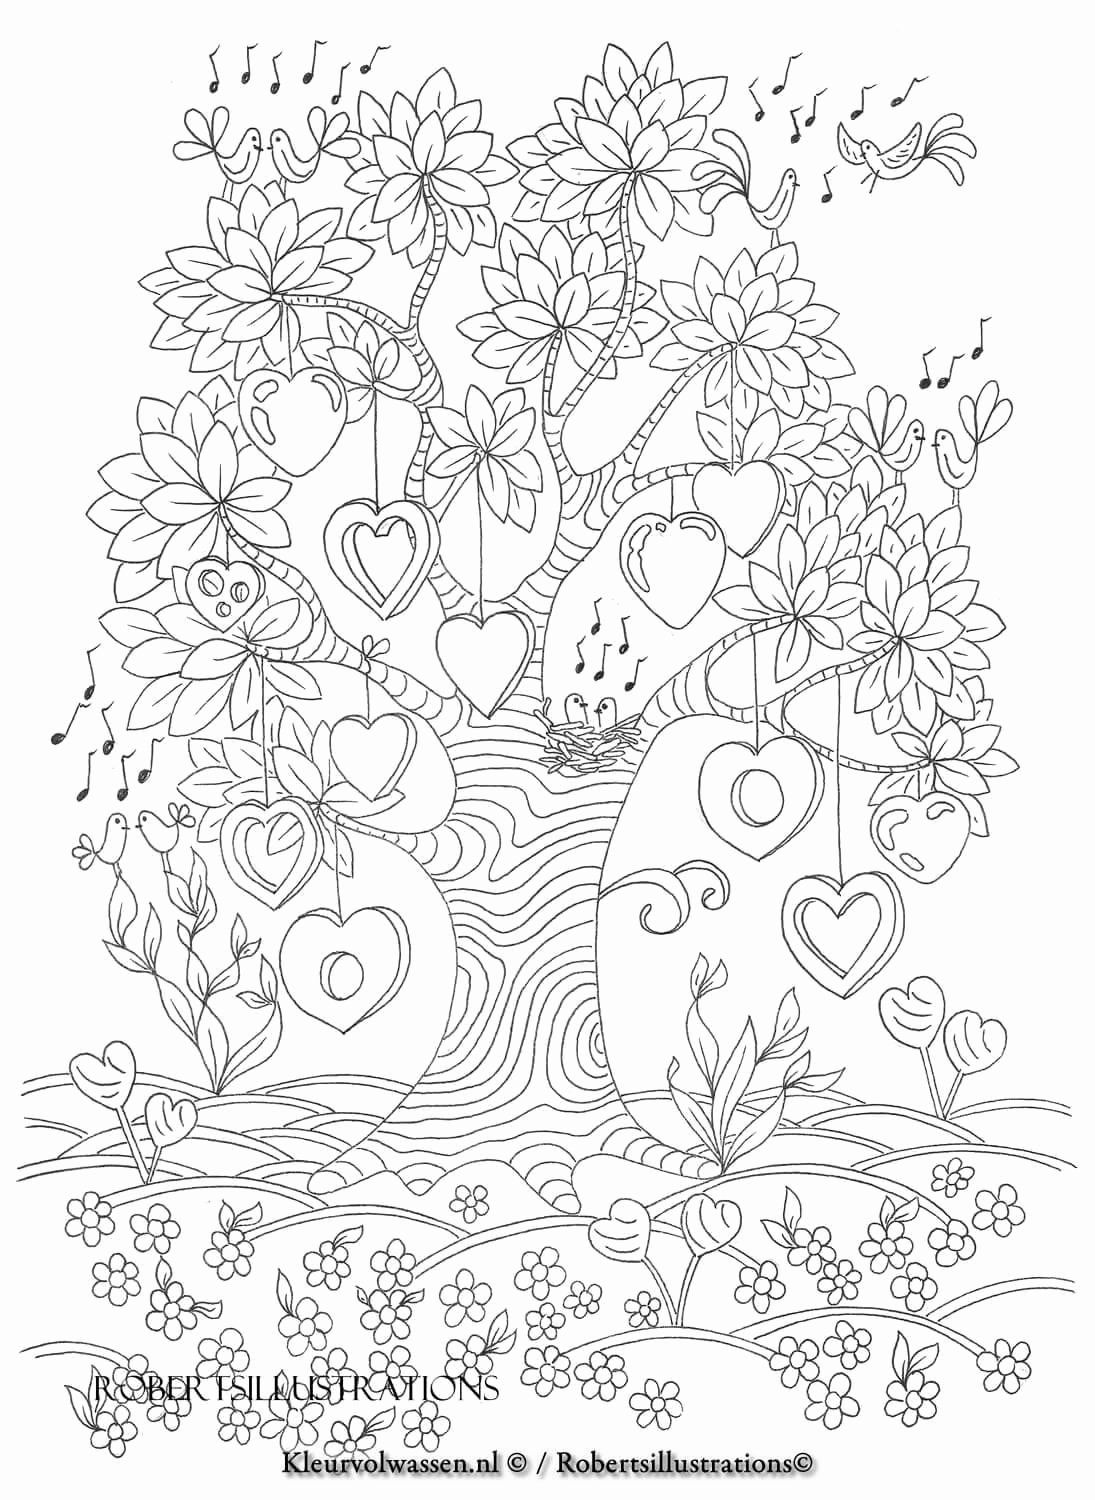 Nature Coloring Book Art Awesome Pin By Gail Dovic James On Color Me No 2 Coloring Pages Printable Coloring Book Coloring Book Art